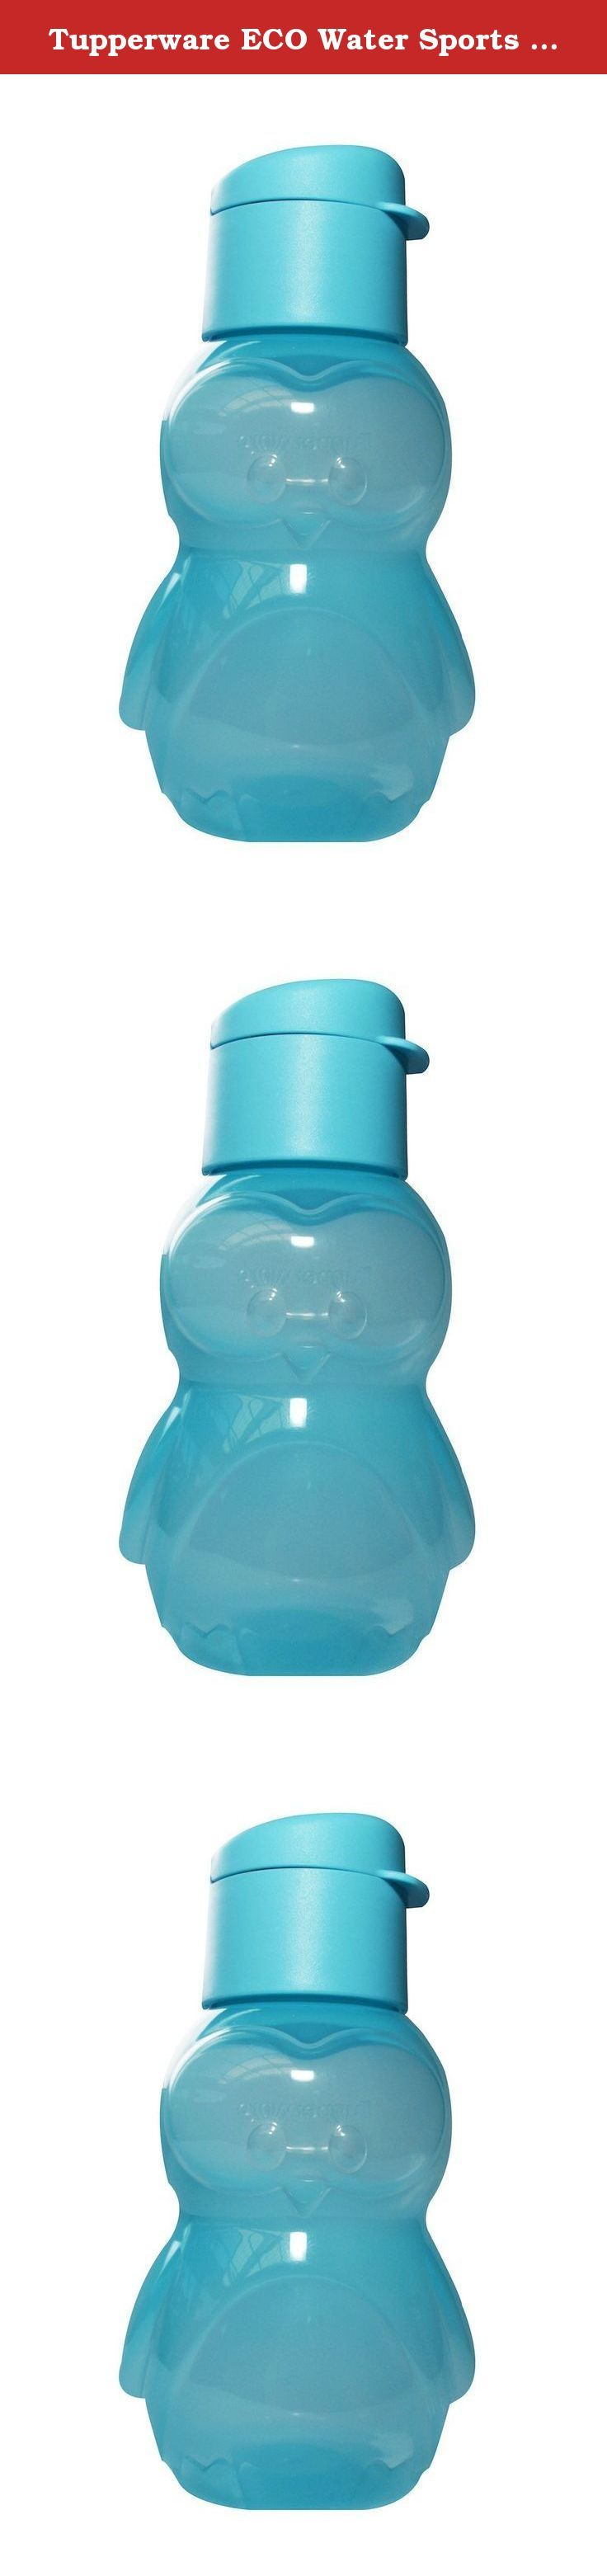 Tupperware ECO Water Sports Bottle 12 Oz for Kids - Penguin - Light Blue. Tupperware is one of the most trusted names in housewares with the highest quality products and the finest design features to meet your special needs. Whether it's getting a good, hot meal on the table at the end of a busy day, toting a nutritious lunch to work, or taking time to learn a new baking secret with your children. Tupperware makes it all possible!.